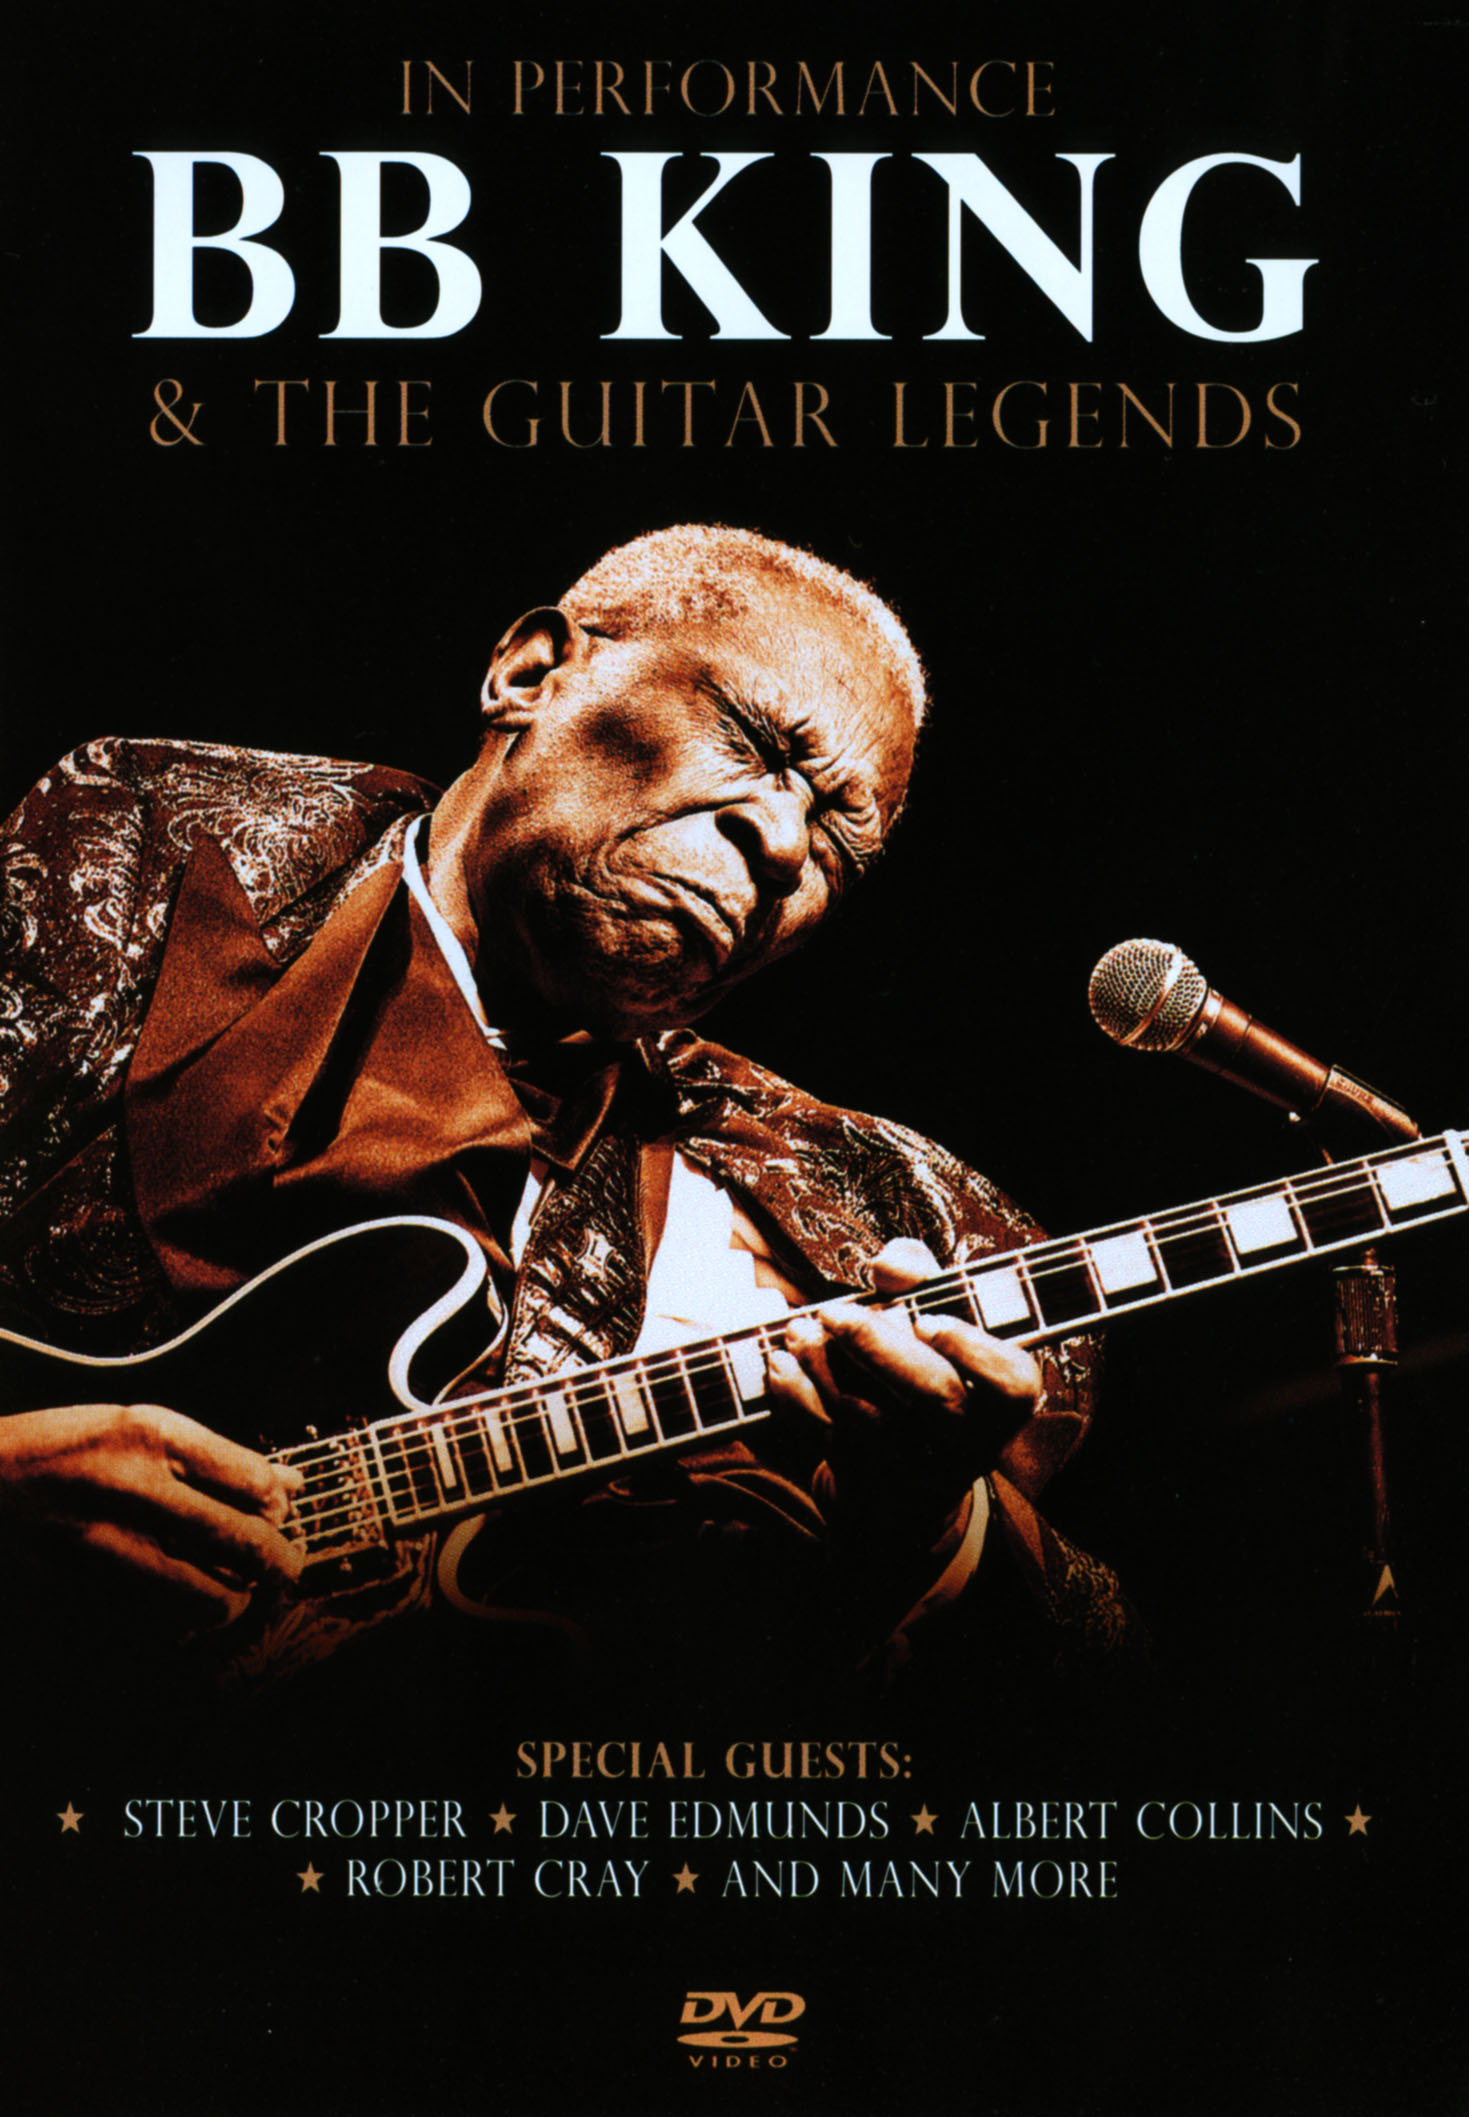 B.B. King & the Guitar Legends: In Performance